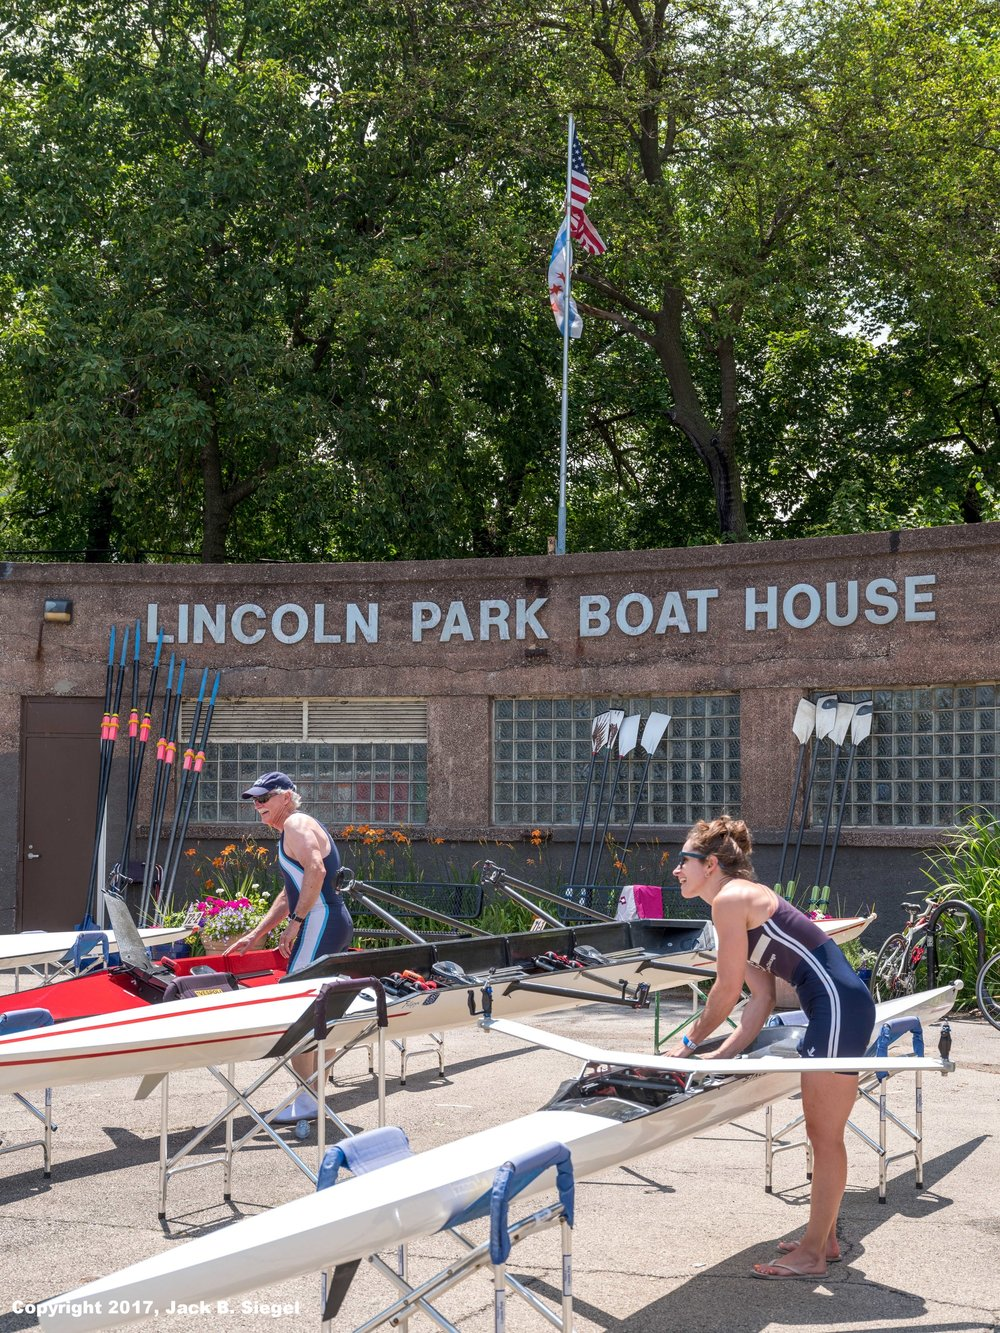 _DSF2342_Copyright_sRGB_Relative_Lincoln Park Boat House.jpg